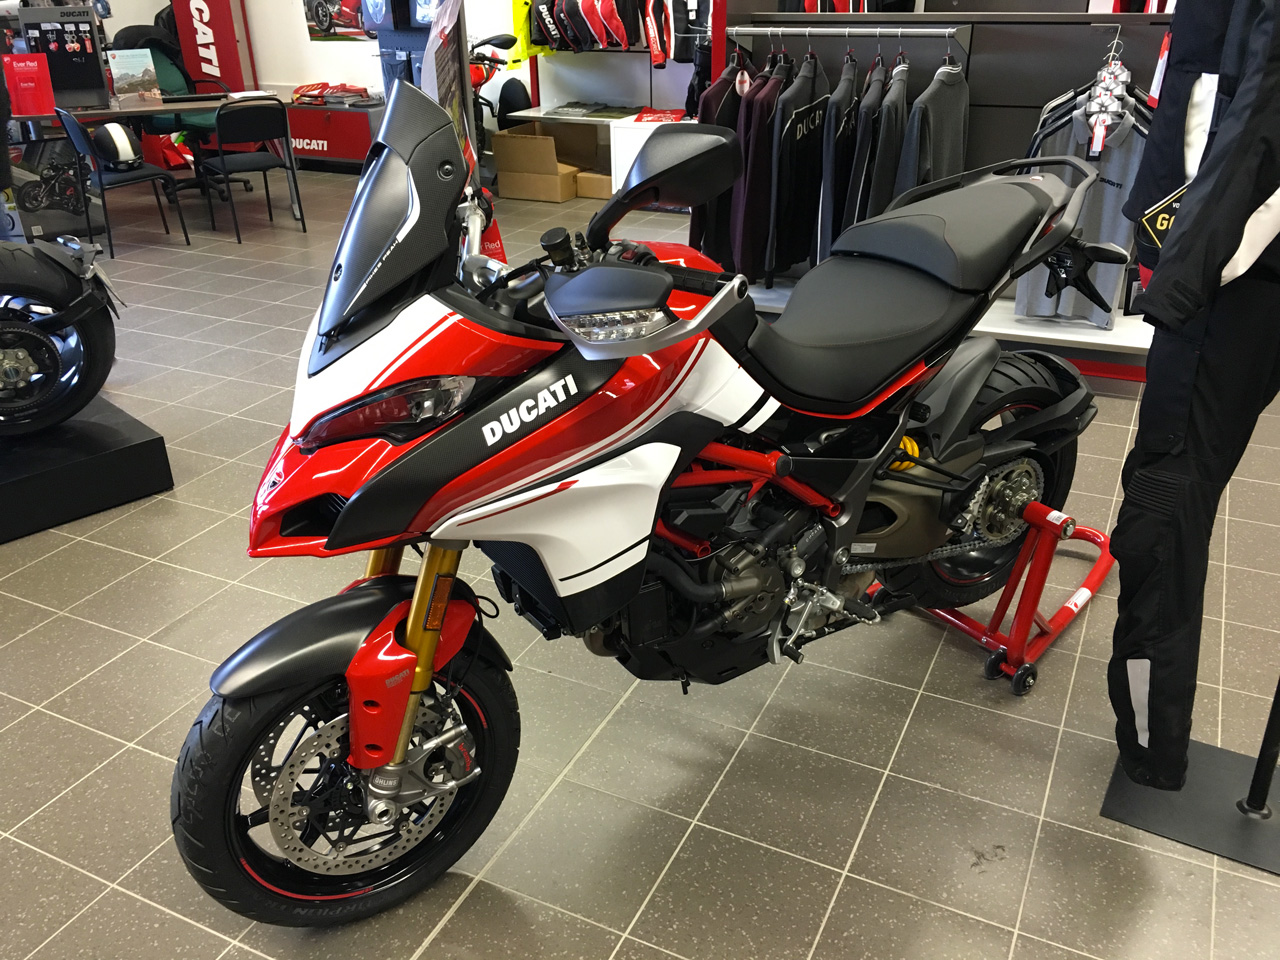 Ducati Multistrada 1200 chez City Bike